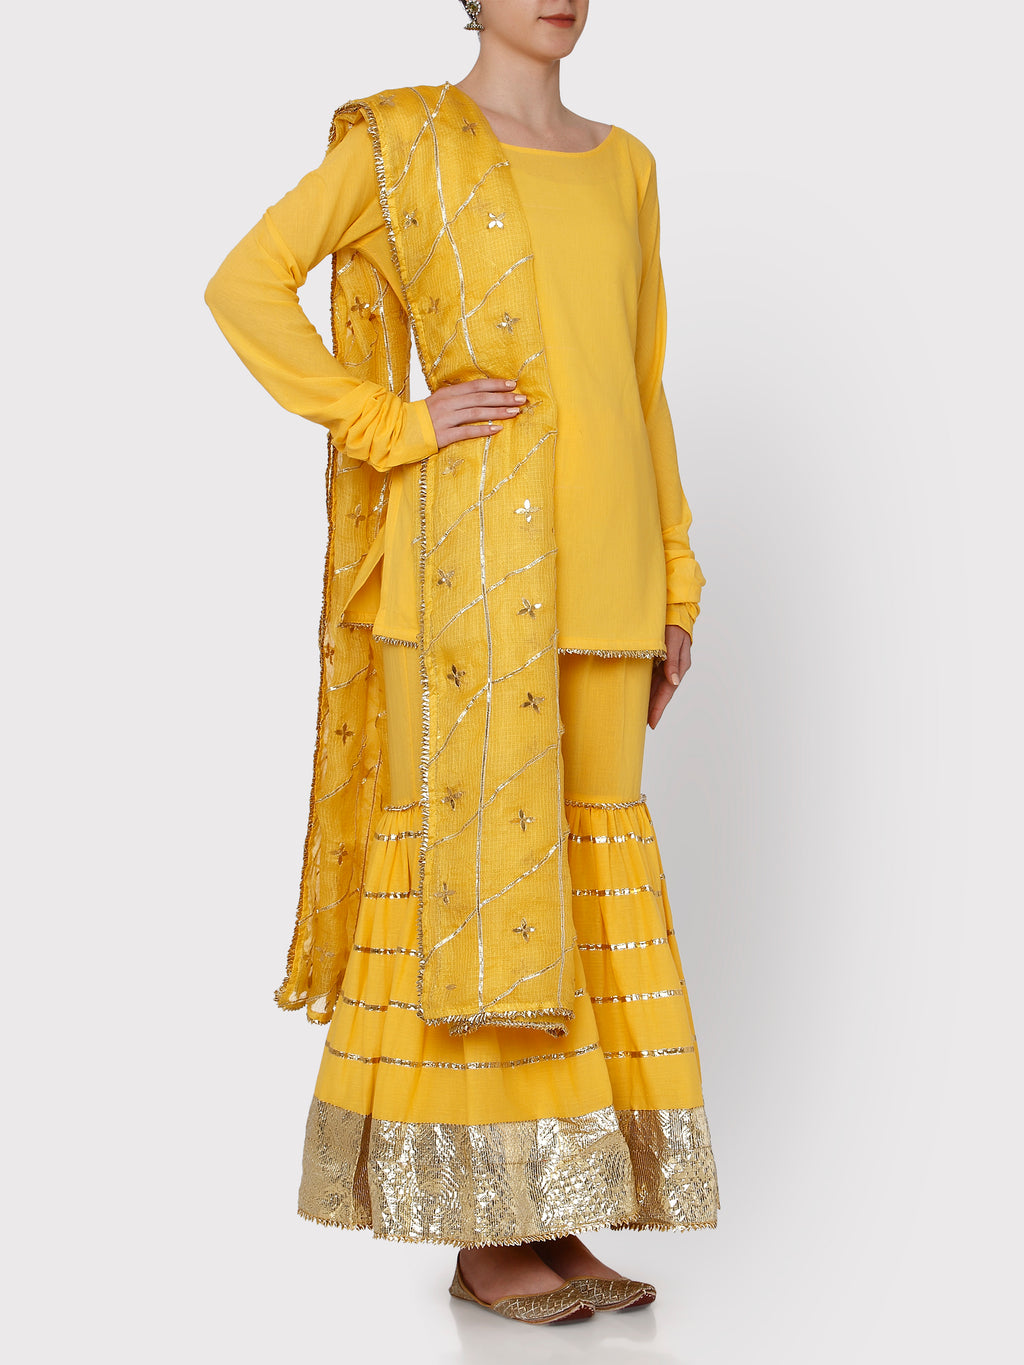 Haldi Yellow Sharara Kurta Set - Riviera Closet